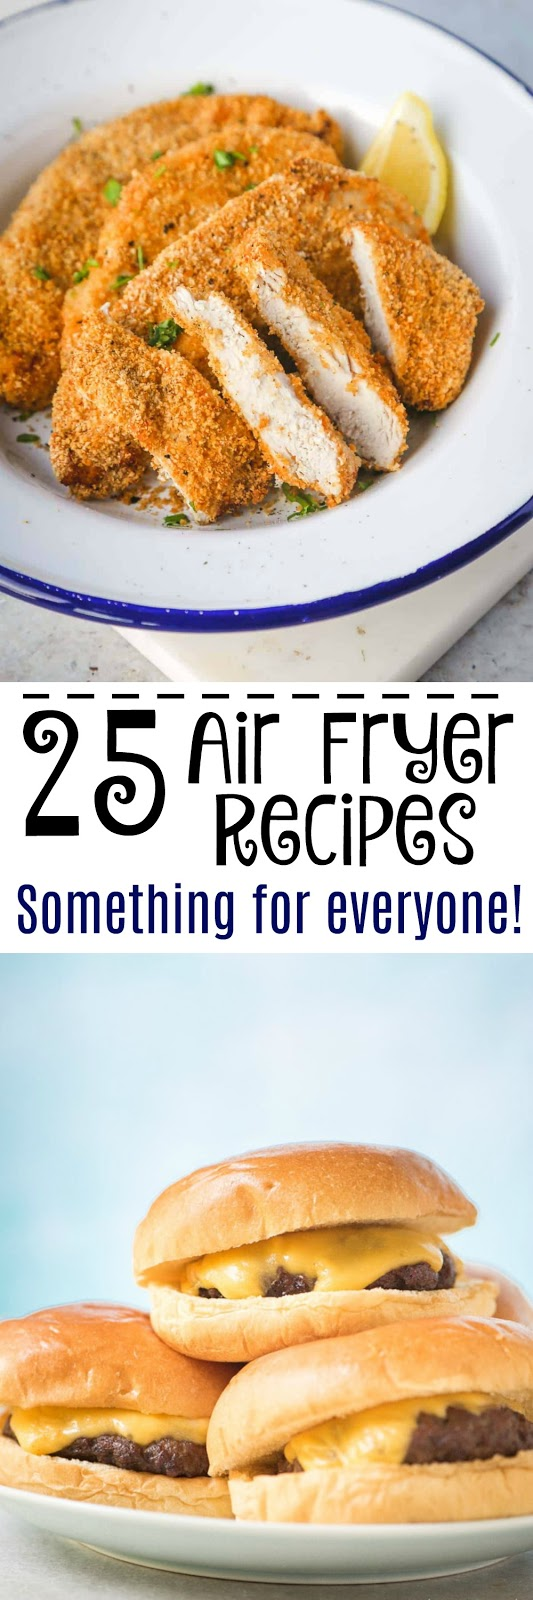 25 Air Fryer Recipes + Most Loved Products from Wayfair (sweetandsavoryfood.com)